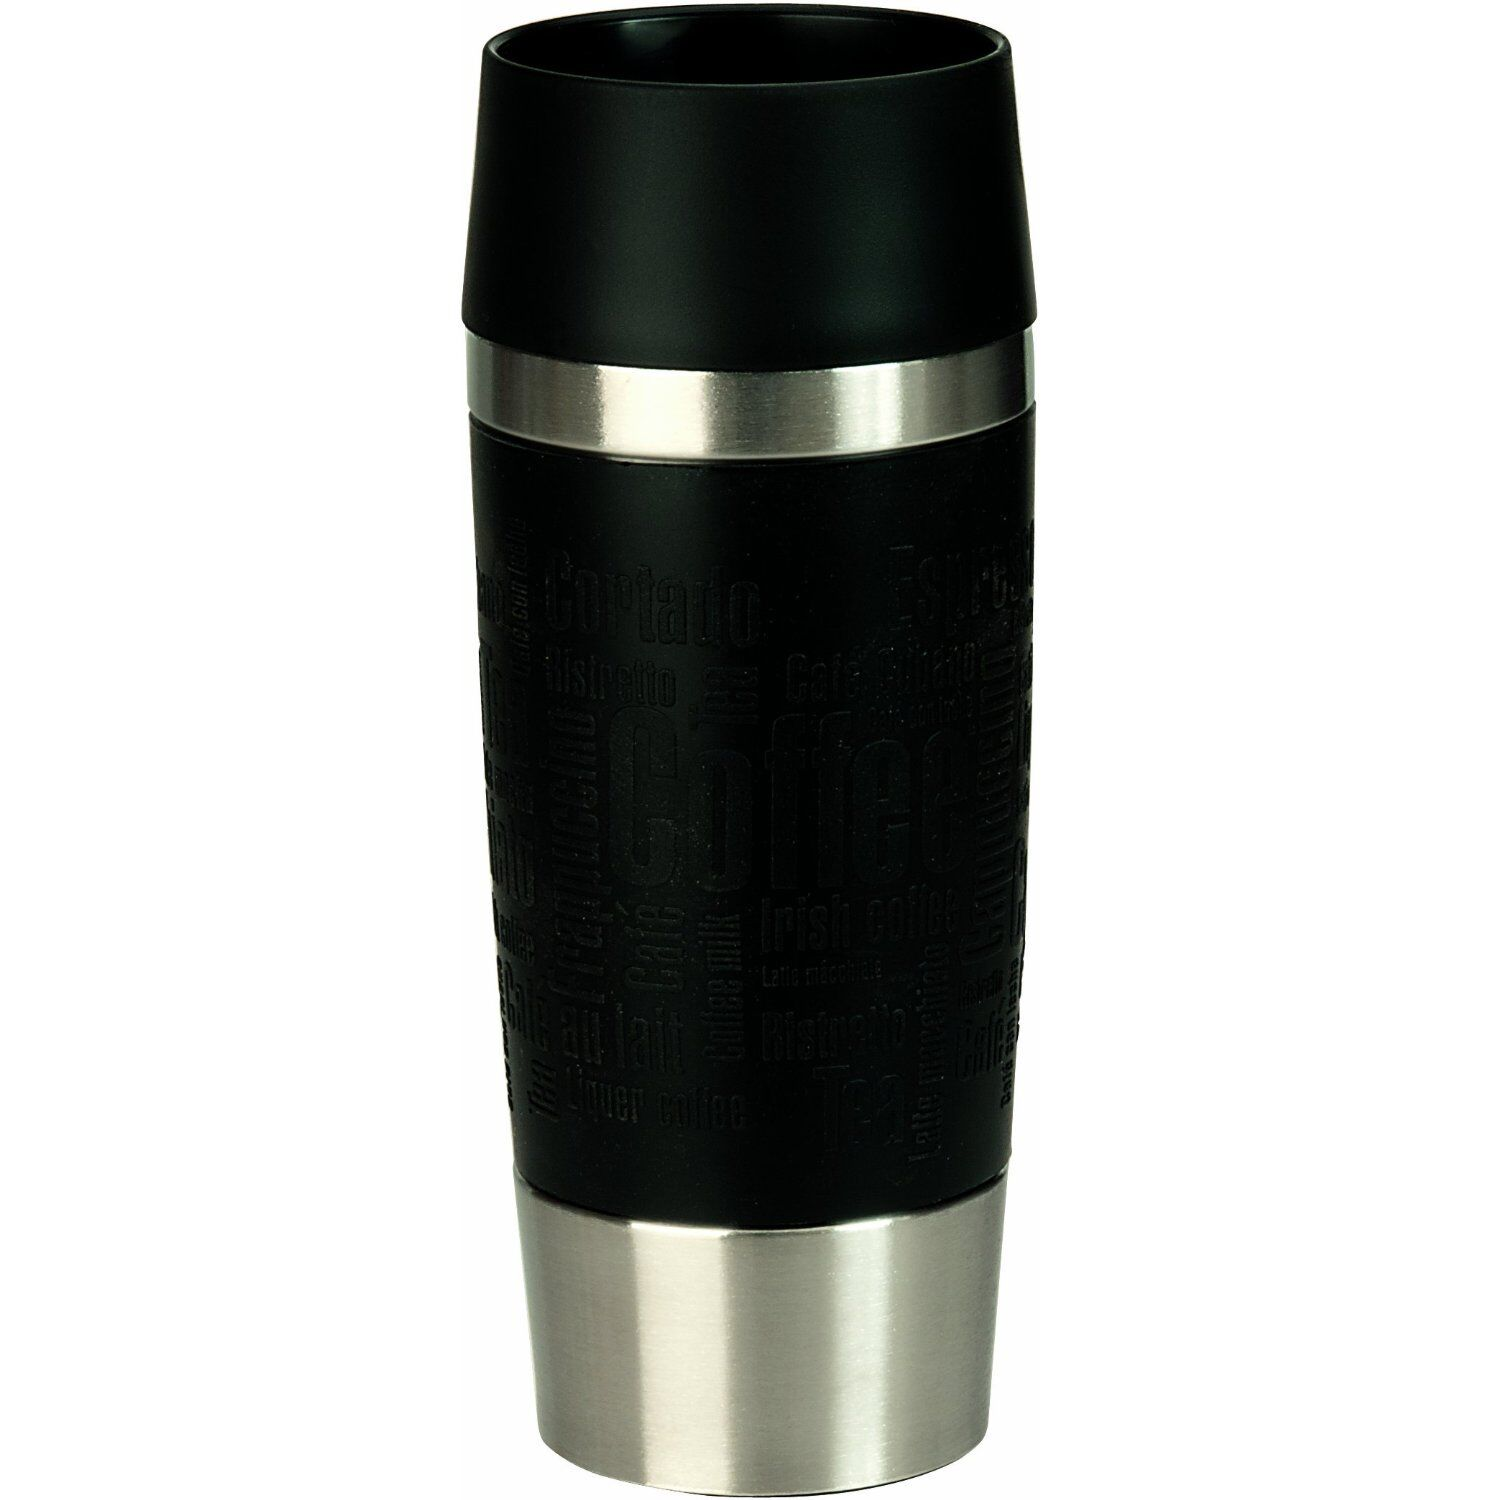 Emsa TRAVEL MUG Isolierbecher, Thermosbecher, Transportbecher Edelstahl